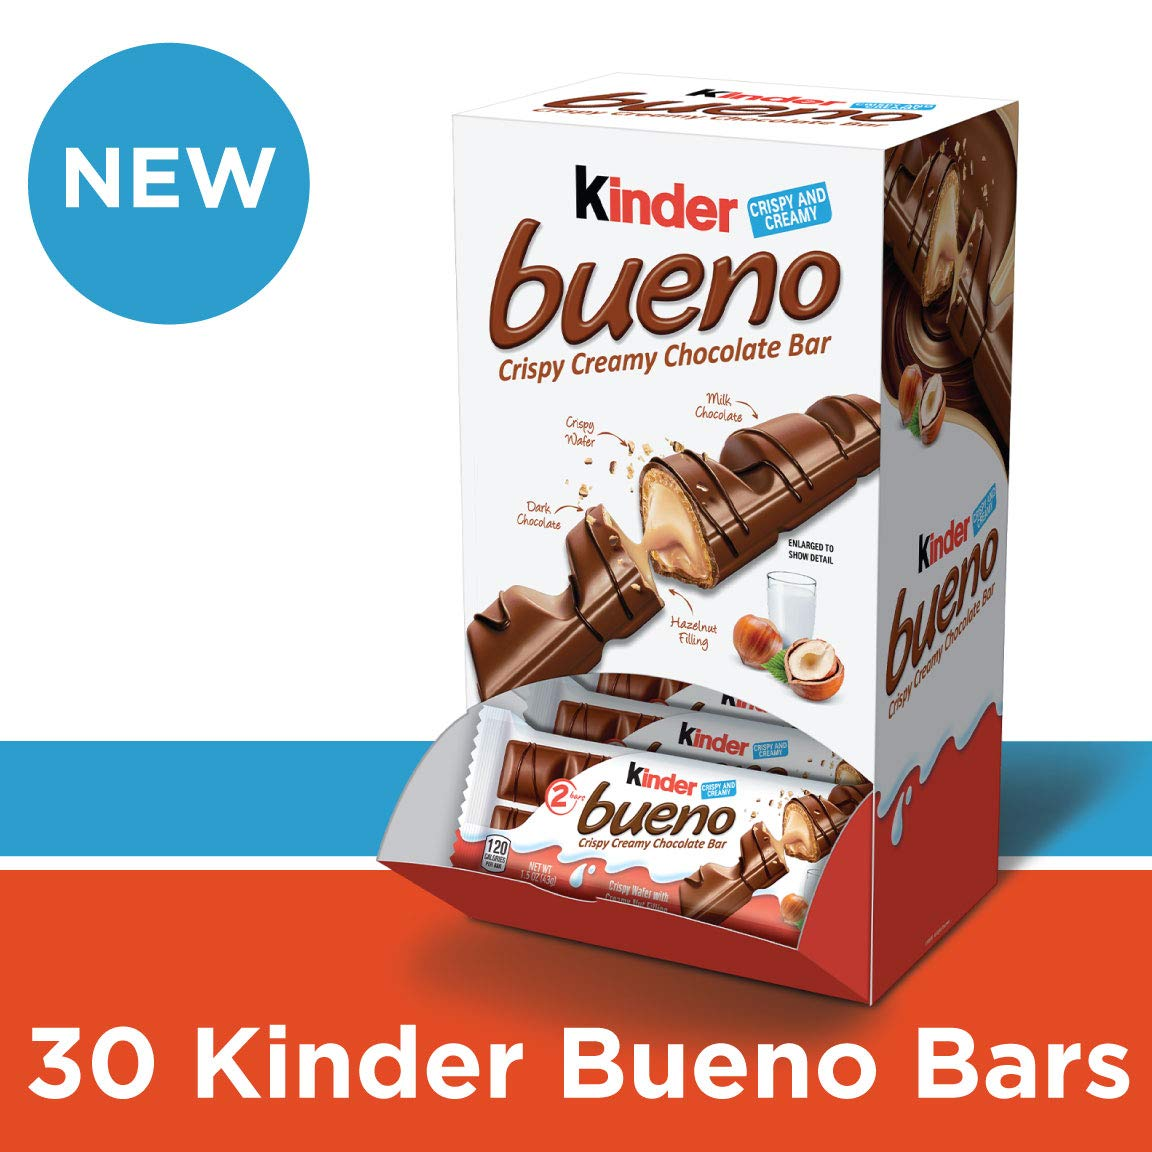 Kinder Bueno Milk Chocolate and Hazelnut Cream Candy Bar, 30 Individually Wrapped Bars Per Pack by Kinder Bueno